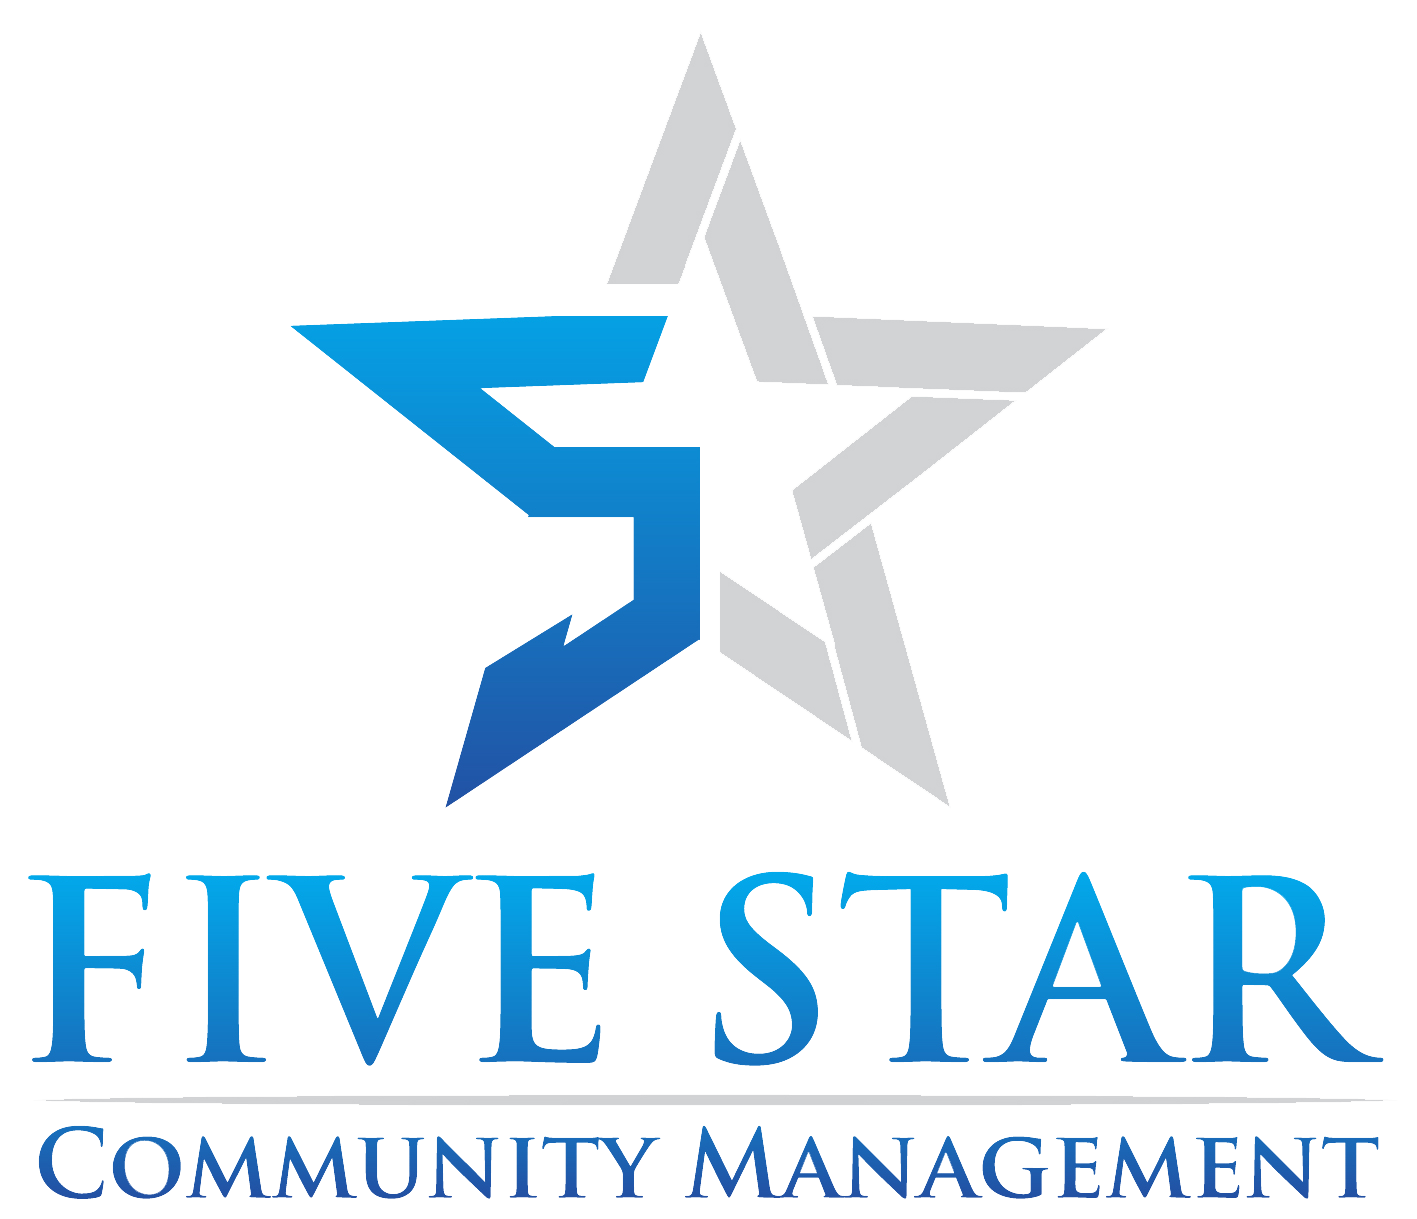 Five Star Community Management